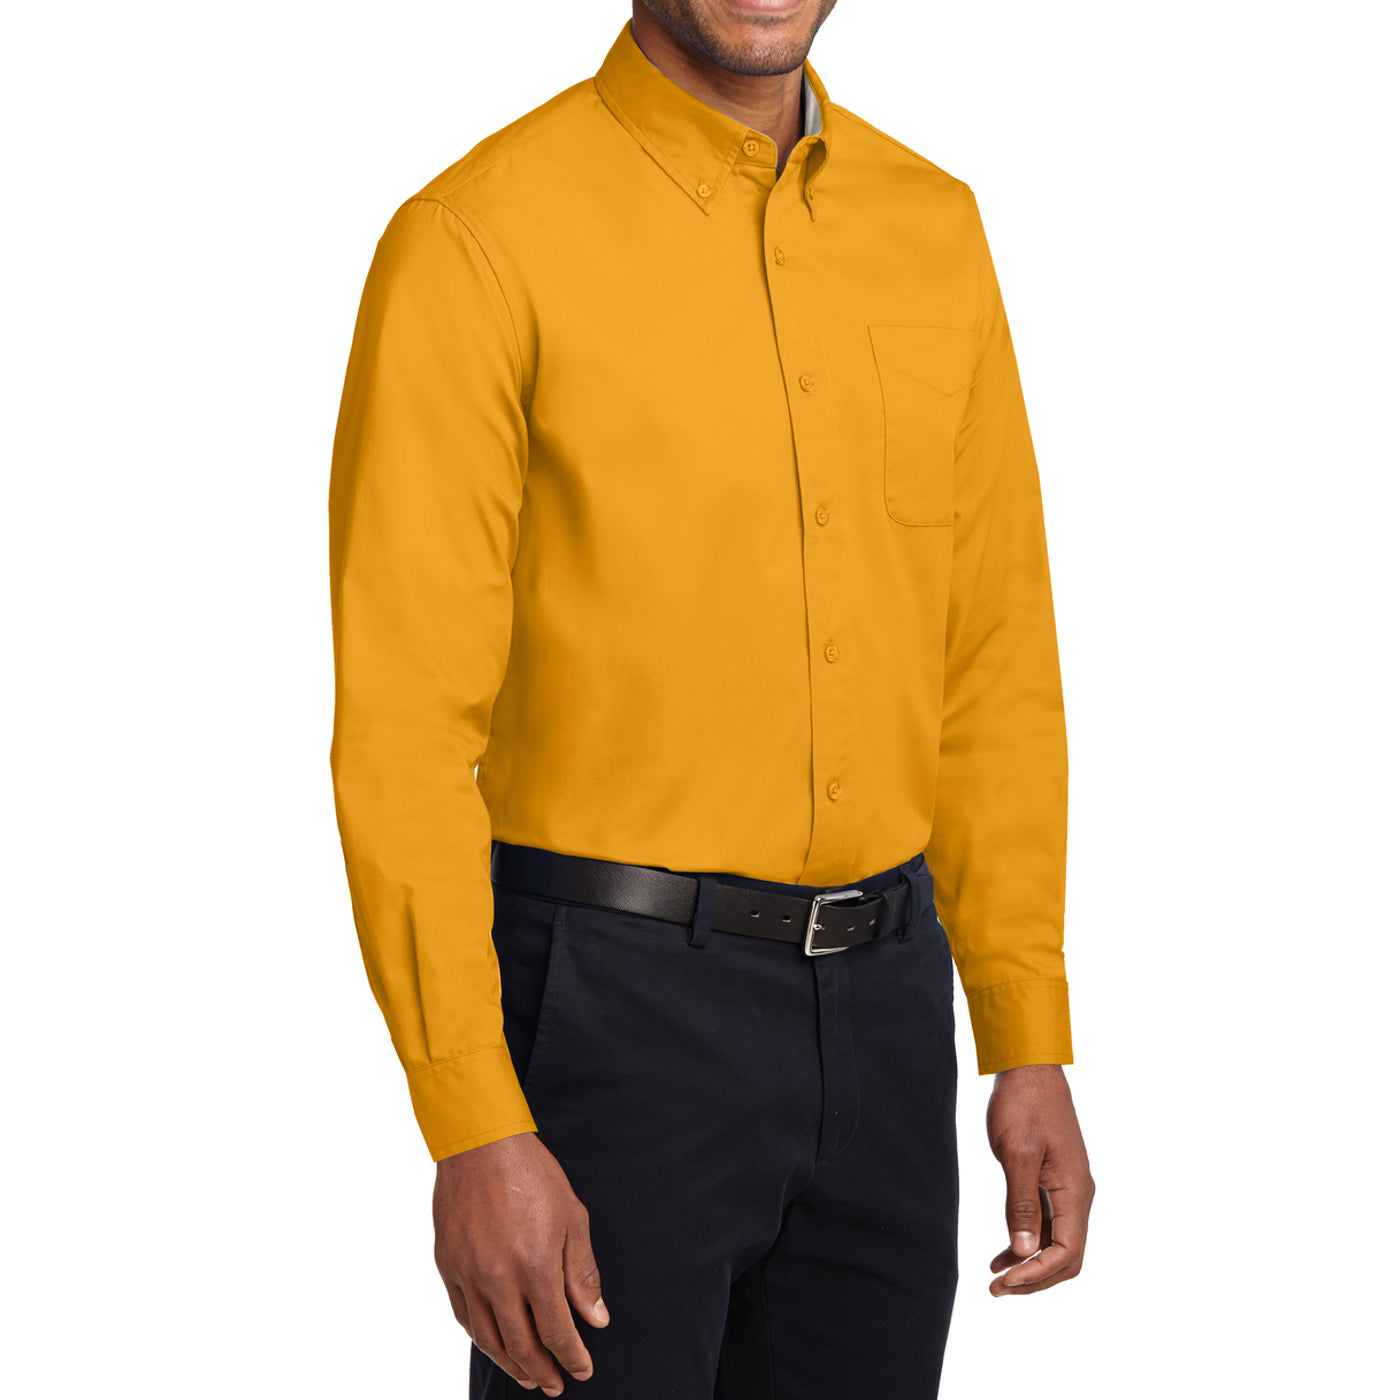 Men's Long Sleeve Easy Care Shirt - Athletic Gold/ Light Stone - Side